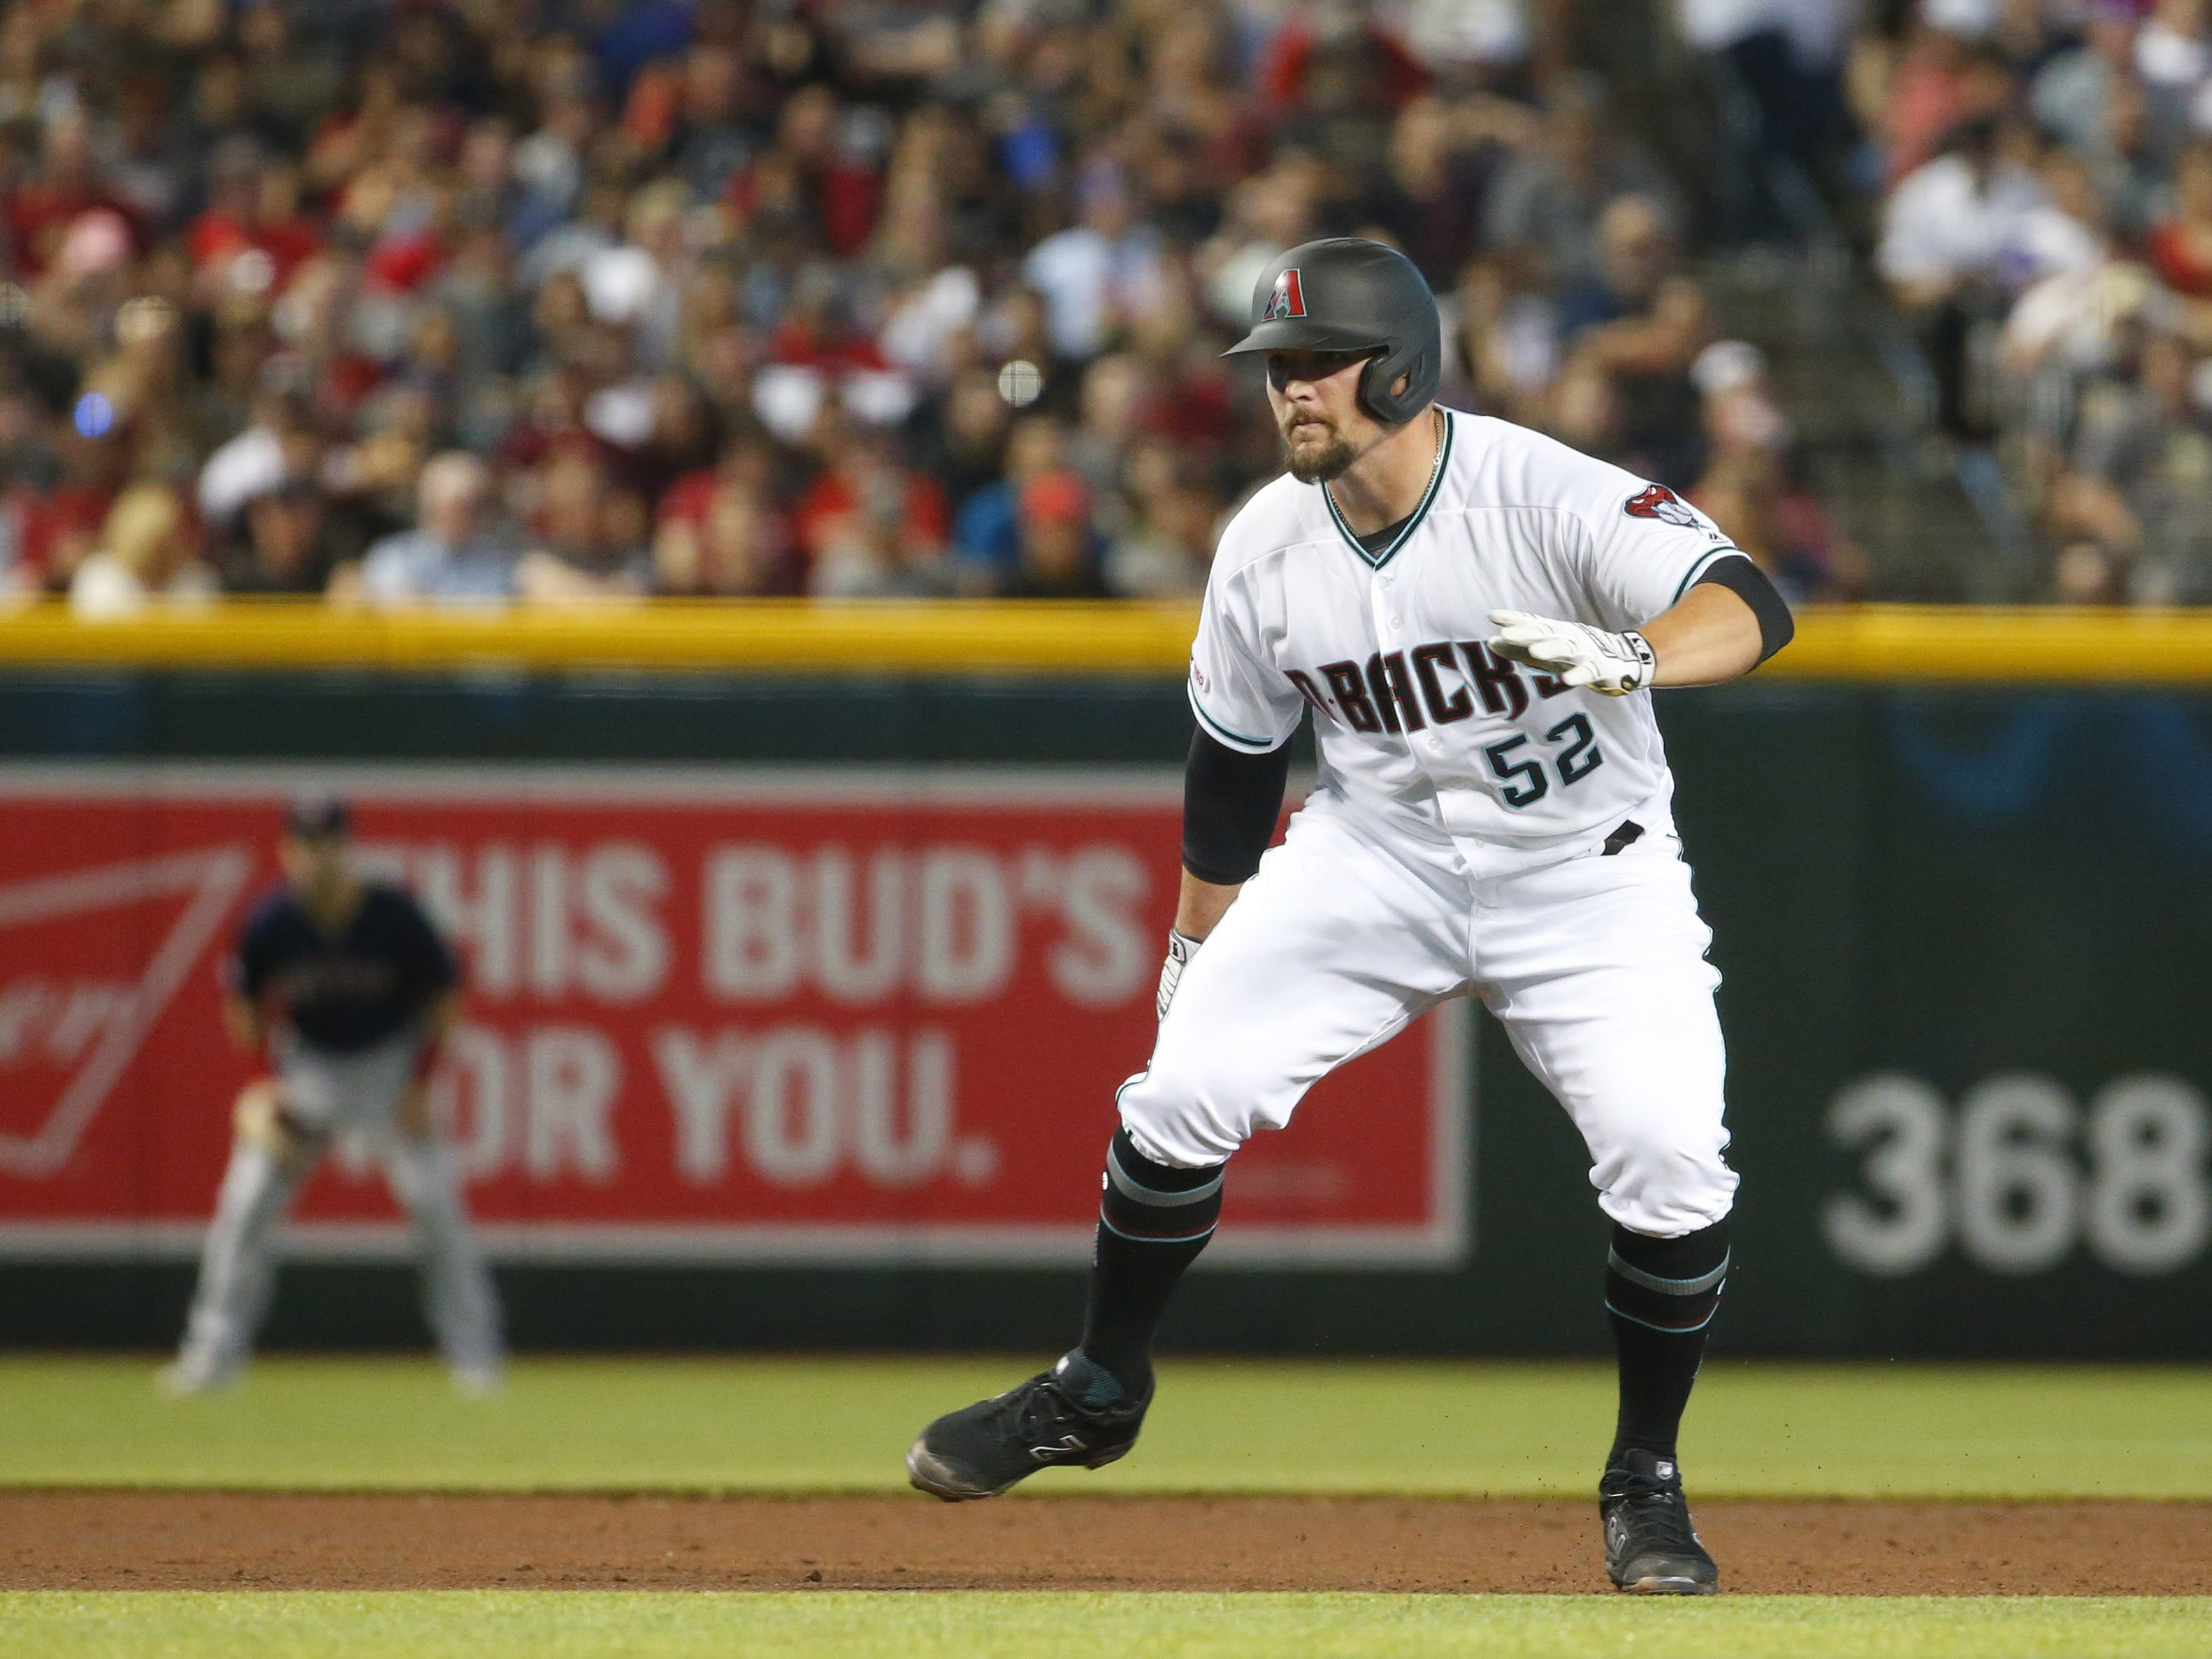 Arizona Diamondbacks starting pitcher Zack Godley (52) leads off on second base during Opening Day against the Boston Red Sox at Chase Field in Phoenix on April 5.